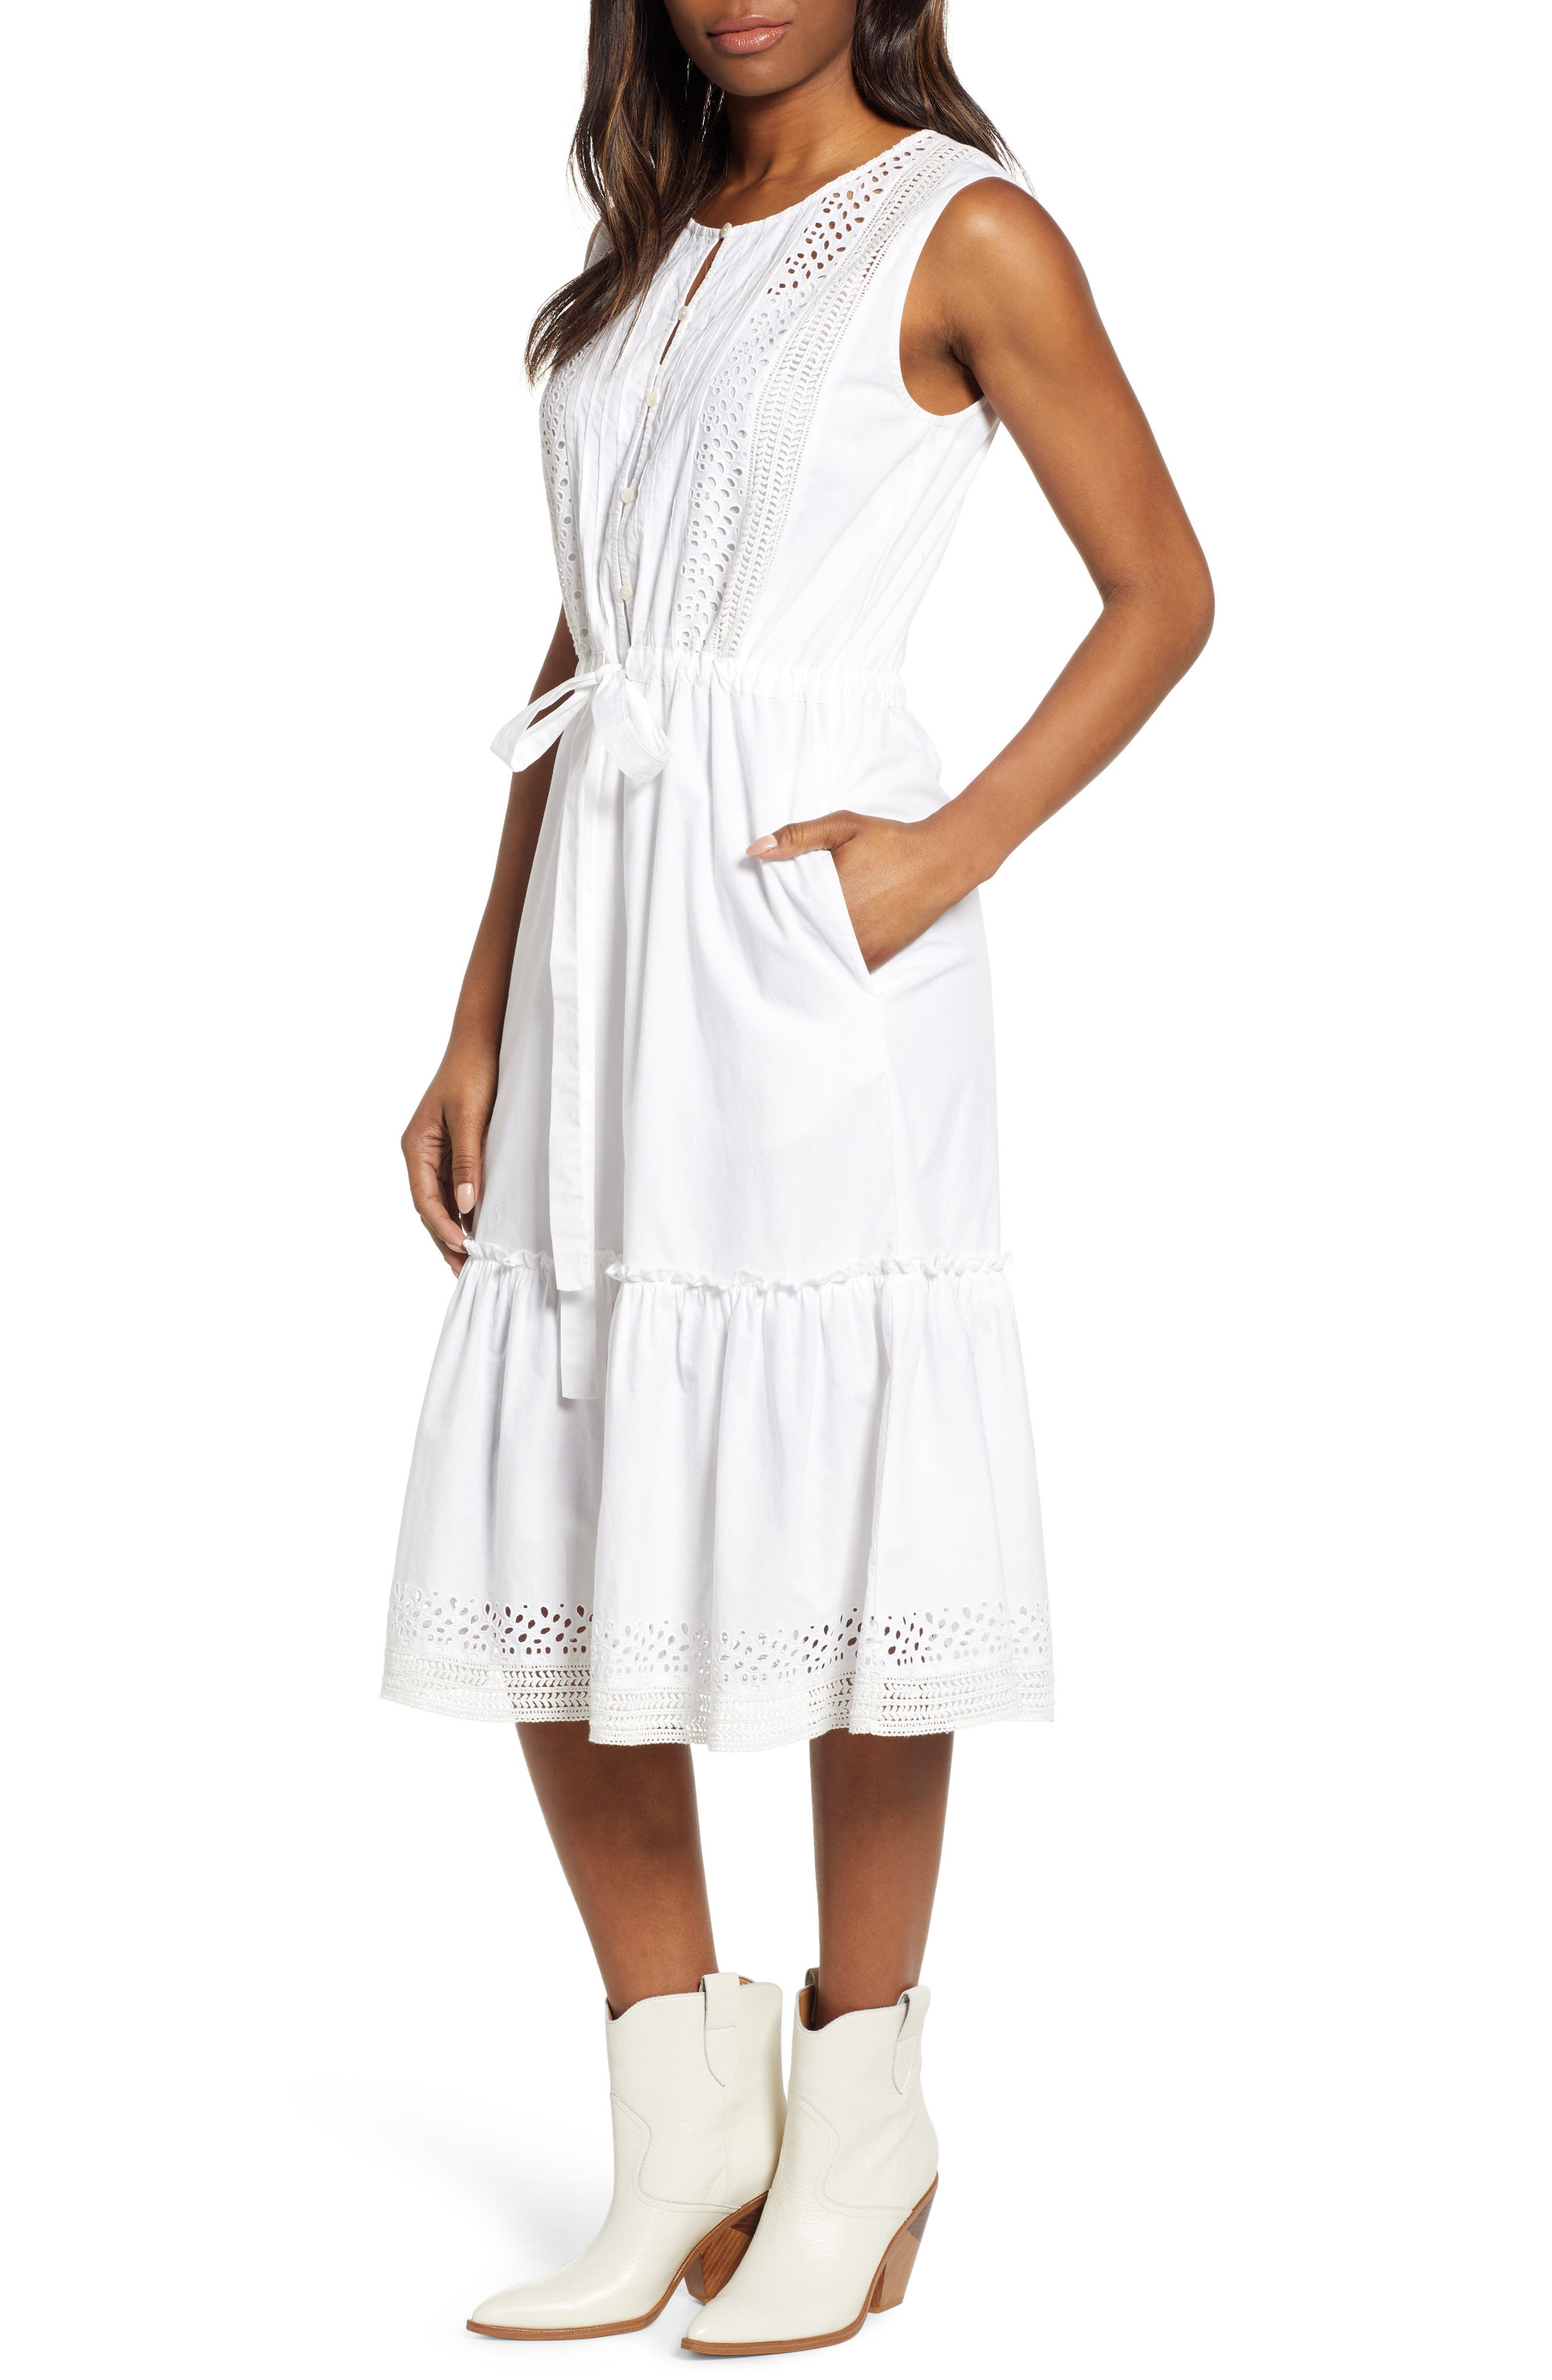 Lucky Brand Sophia Eyelet Detail Cotton Dress, White